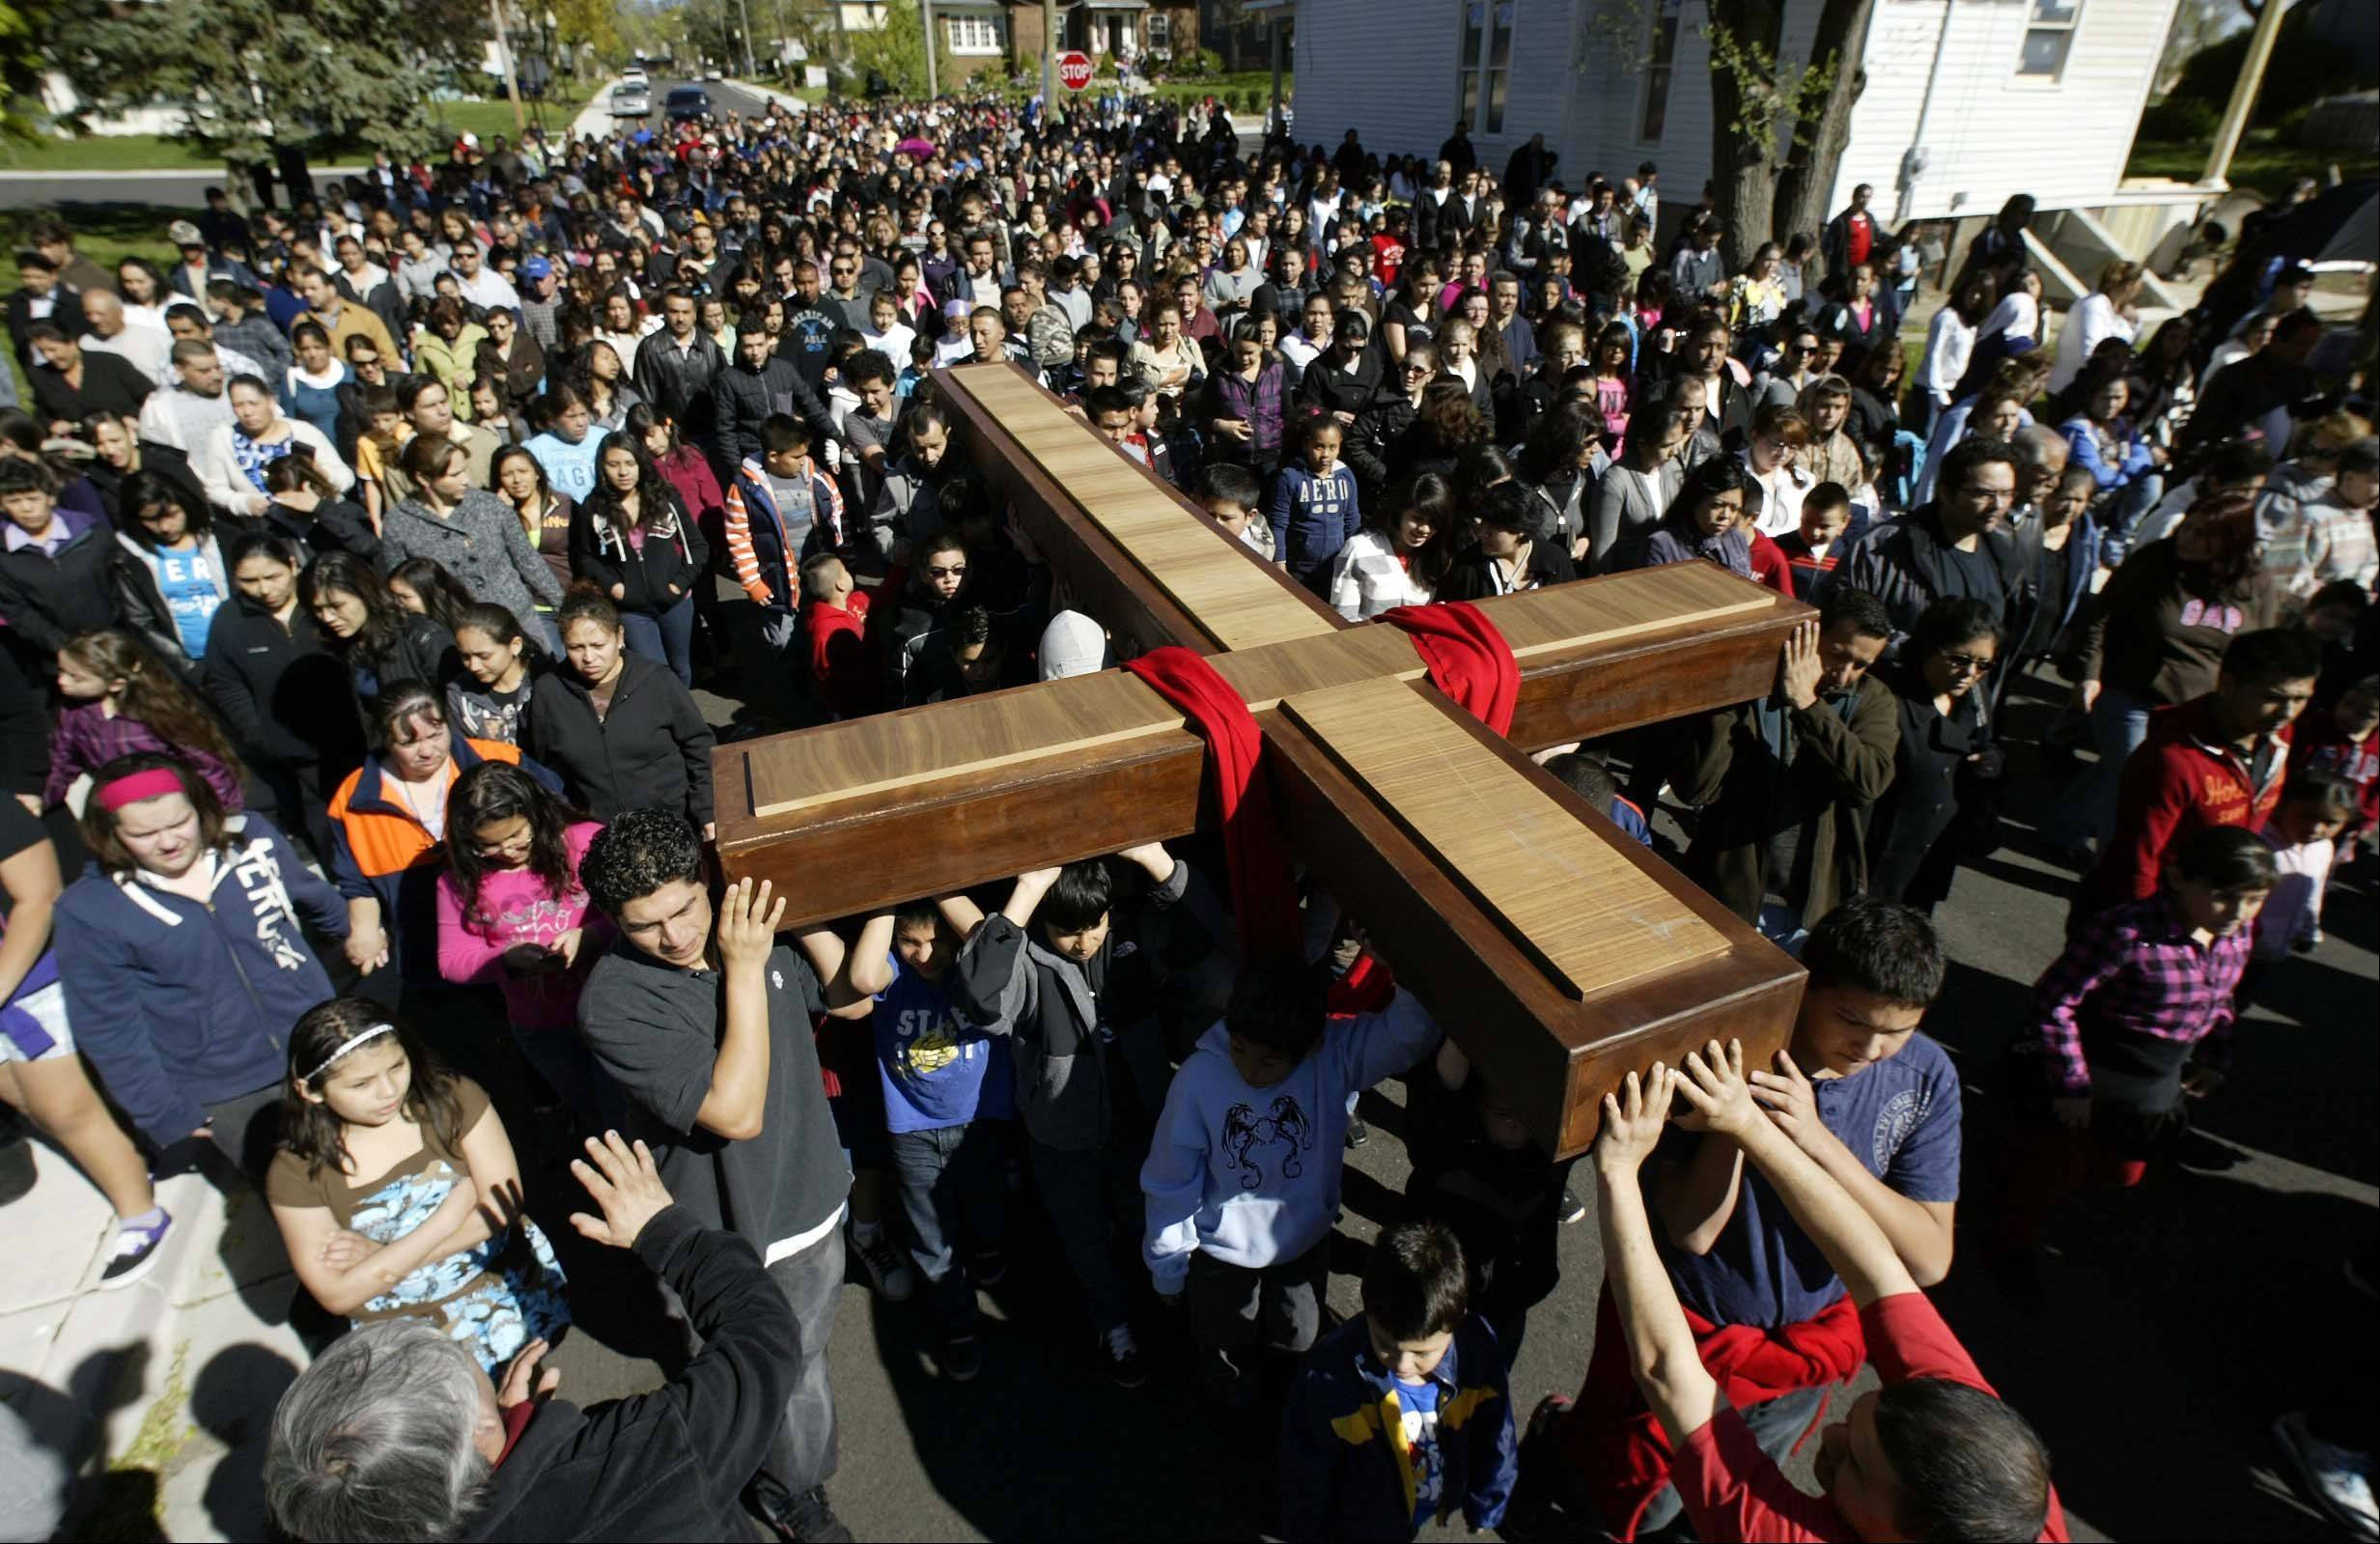 Hundreds crowded the streets during St. Joseph Catholic Church's annual passion march along Division Street in Elgin. Parishioners took turns carrying the cross as the large crowd made their way through the neighborhood.